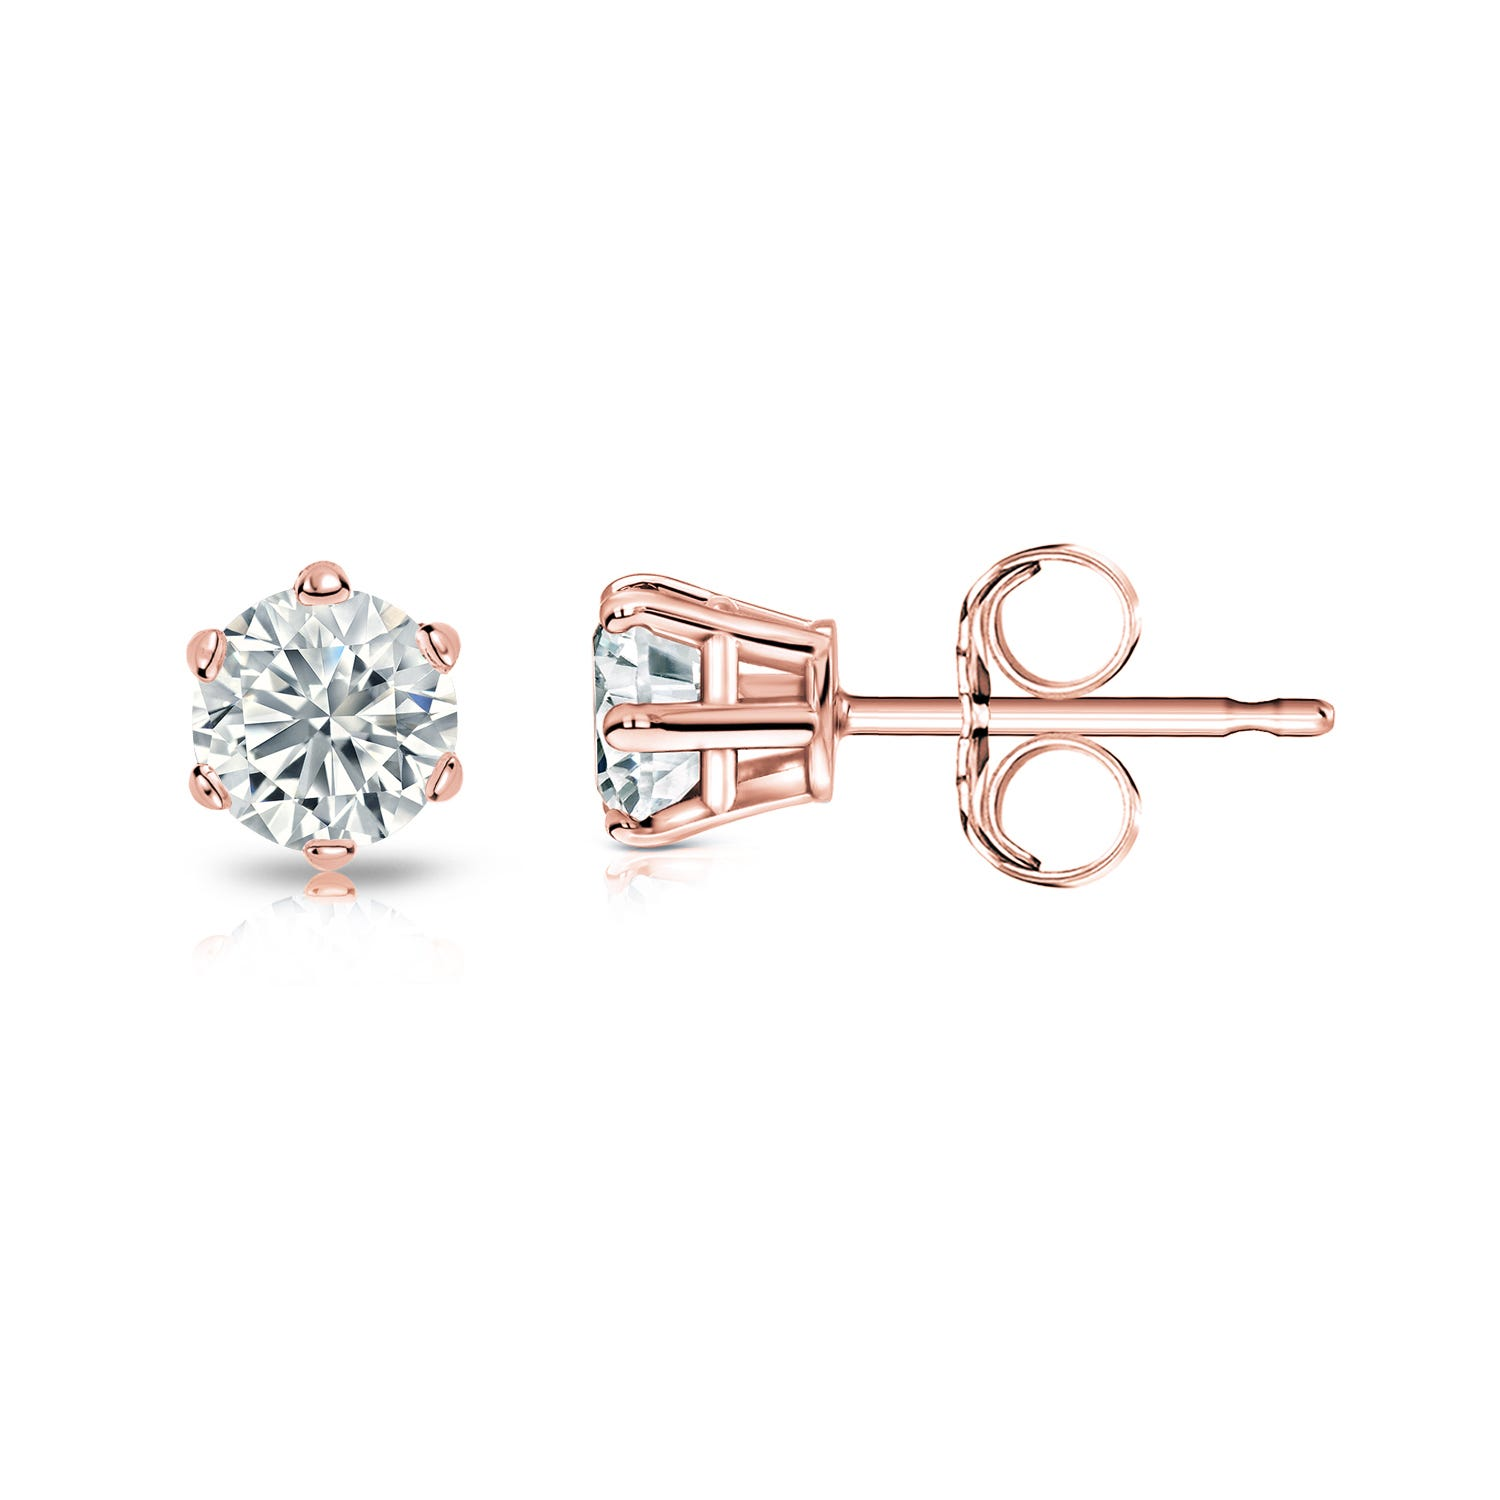 Round Diamond 1/7ctw. (IJ-I2) Solitaire Stud 6-Prong Earrings in 10K Rose Gold